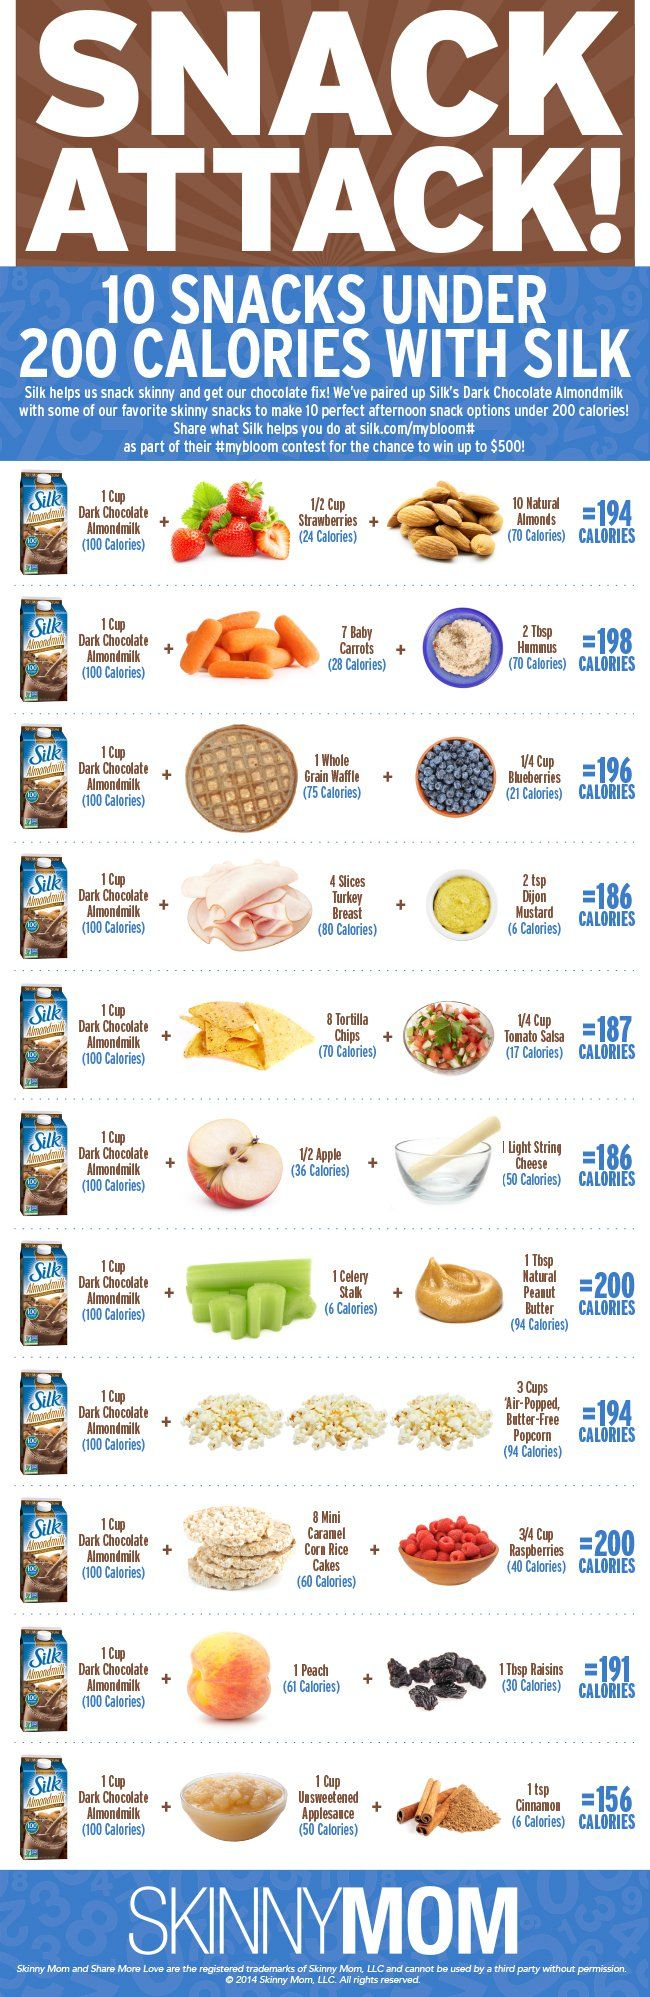 10+Snacks+Under+200+Calories+with+Silk